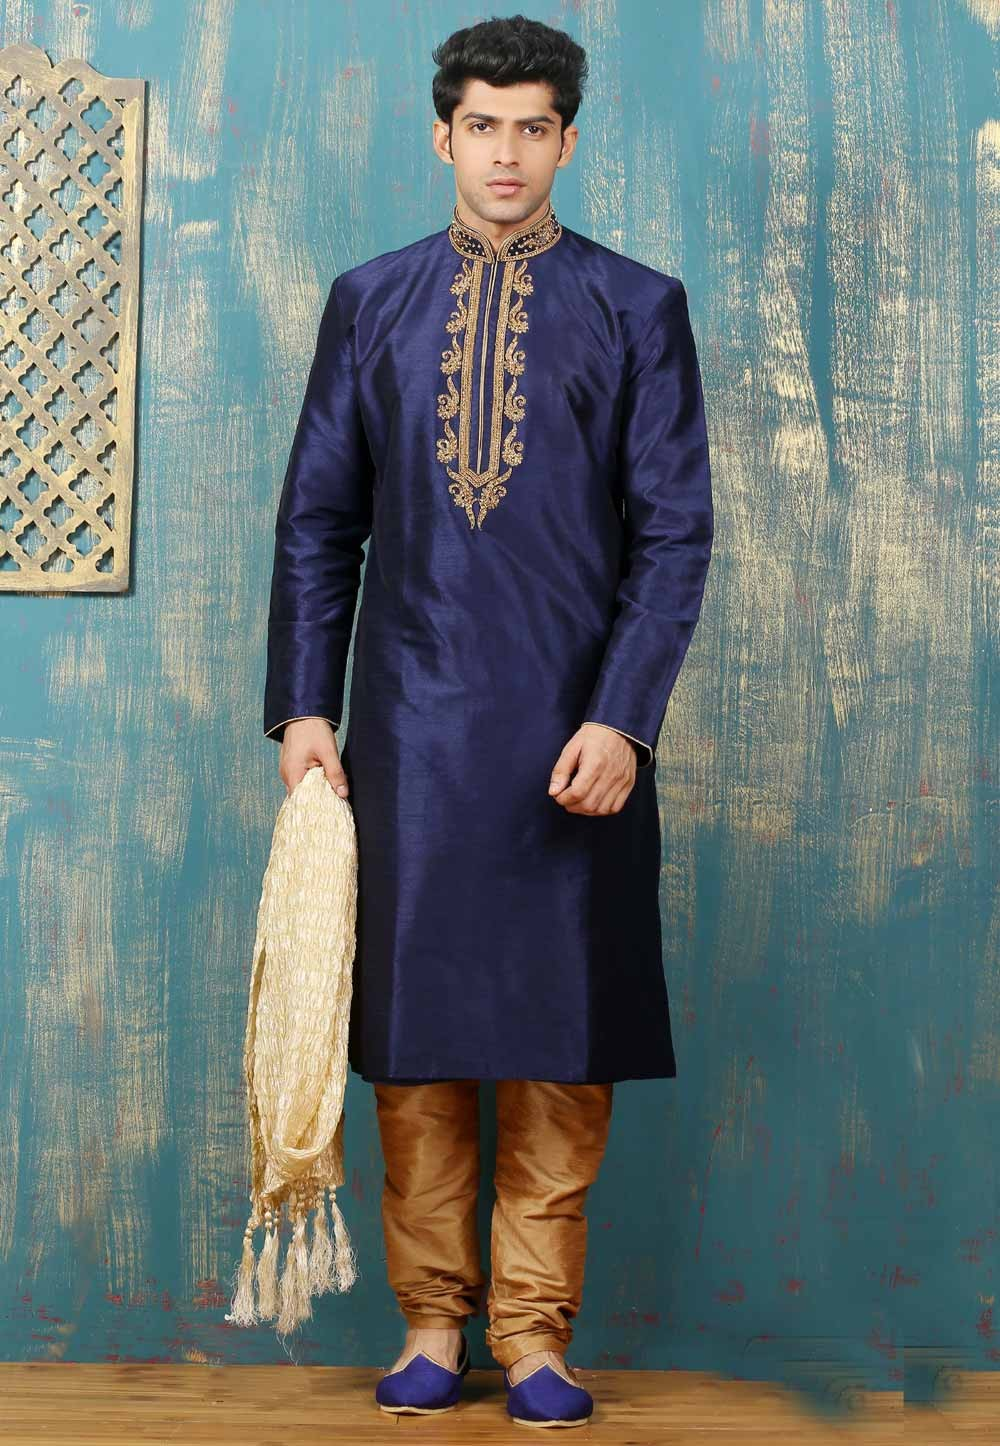 Men's Exquisite Navy Blue Color Dupion Art Silk Readymade Kurta Pajama.